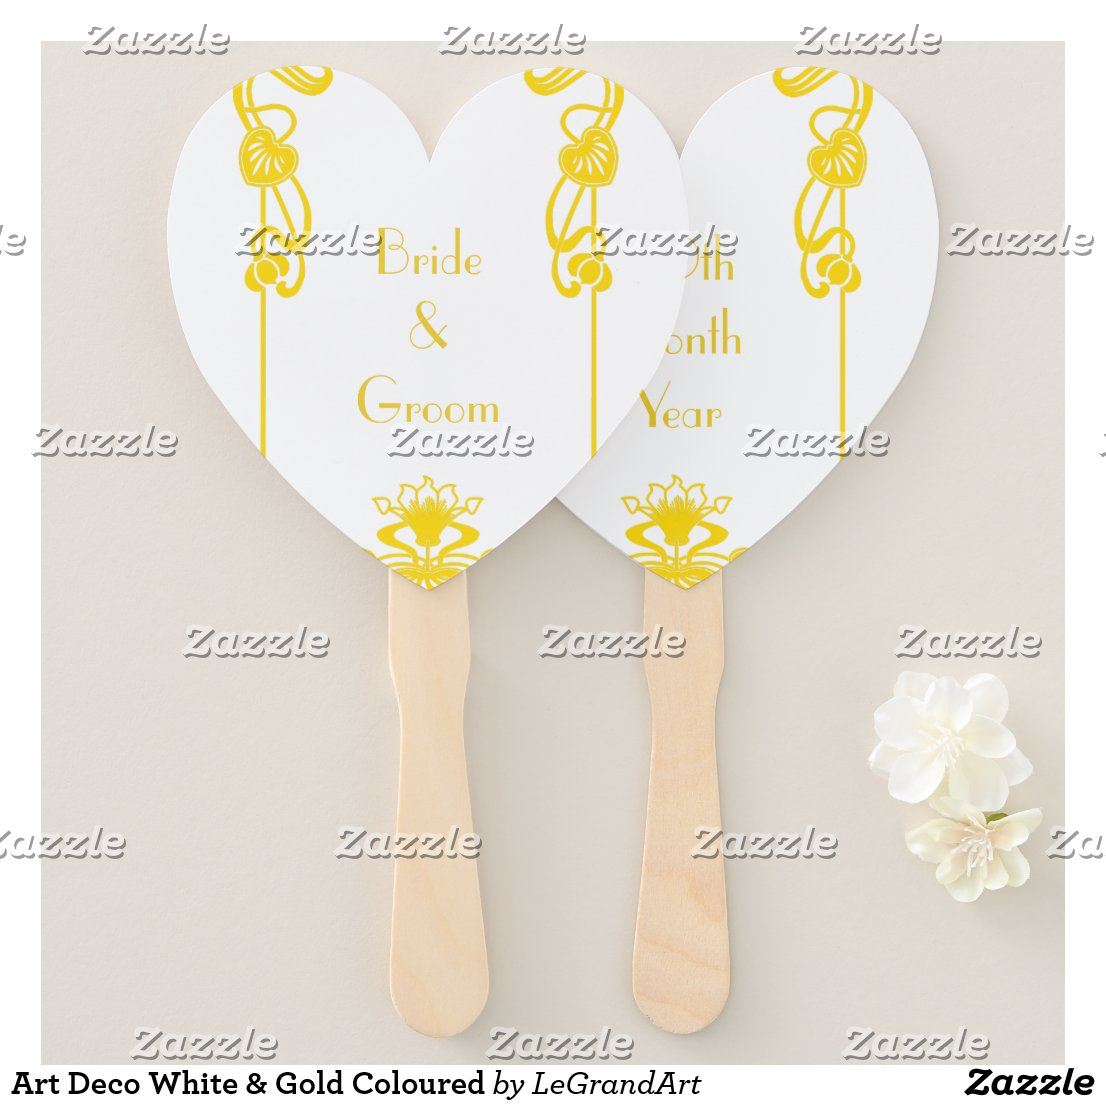 Art Deco White & Gold Coloured Hand Fan